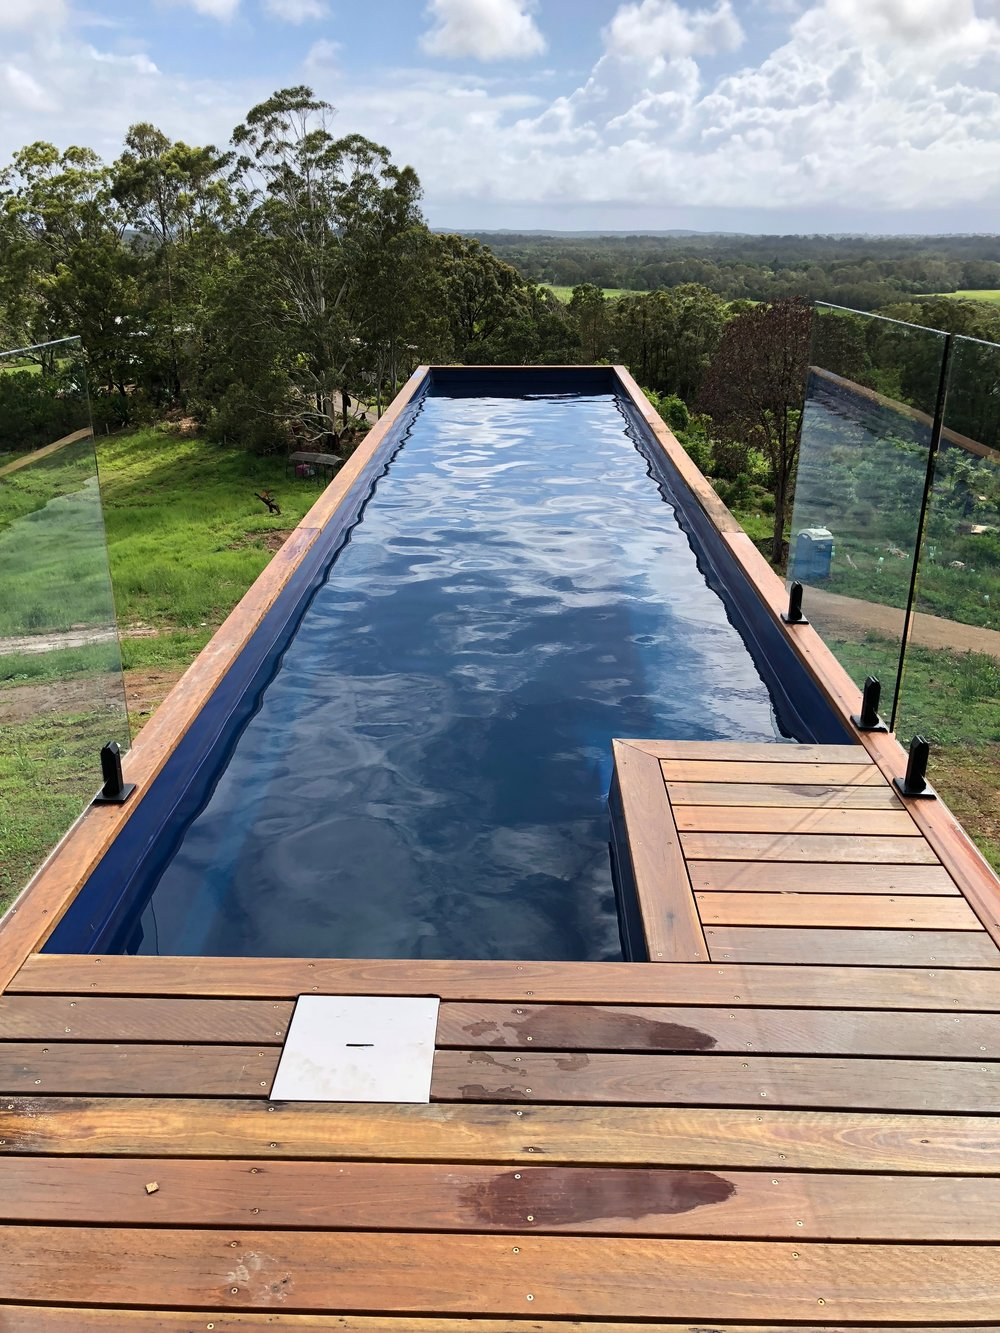 All in one design - Each Shipping Container Pool is pre-assembled with a complete filtration system in a controlled factory in Australia making it the most sustainable pool on the market. Learn more ➝